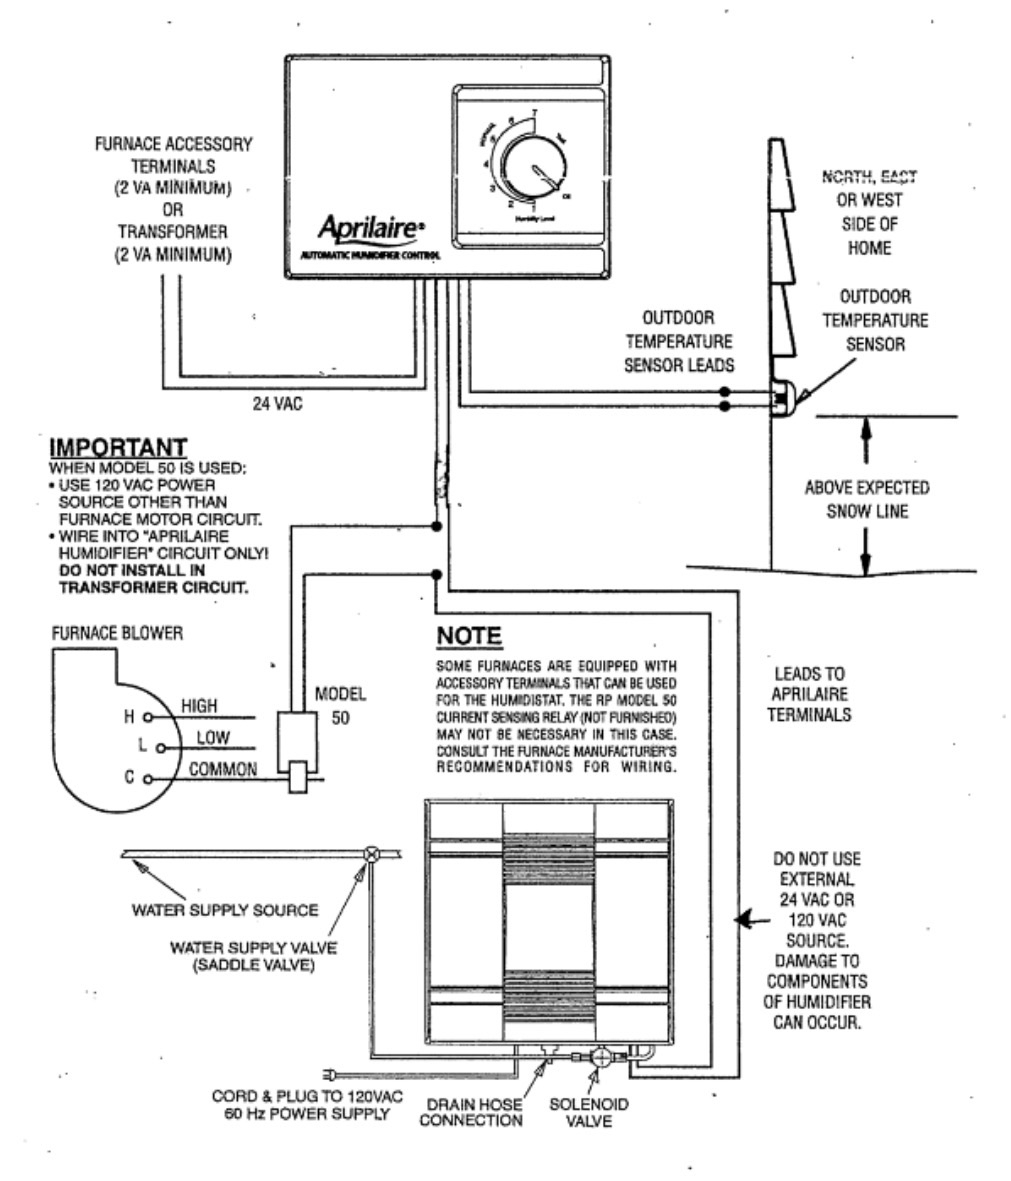 trane xv95 thermostat wiring diagram gallery